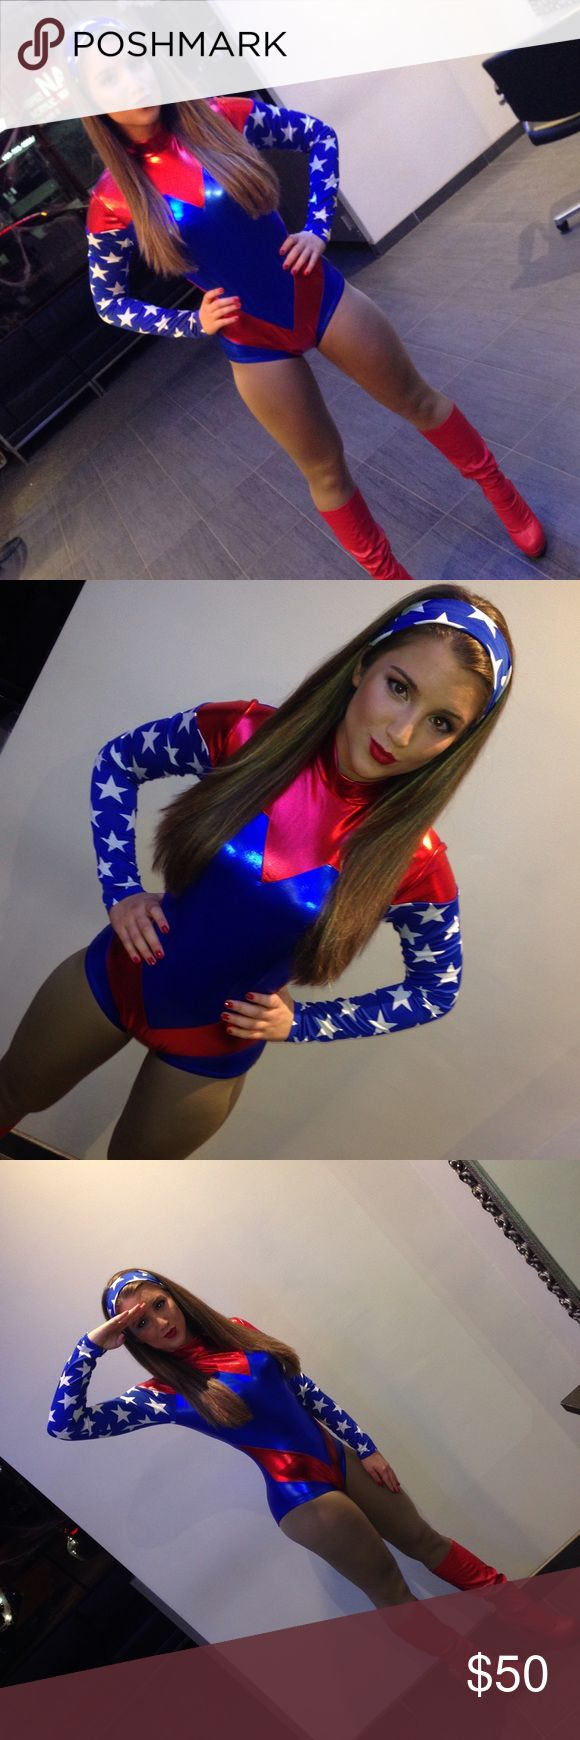 Super Woman costume Worn once. Had tights underneath.  Compliments ones body shape. Does not come with red boots. Just headband and body suit. Perfect condition. Foreplay Other